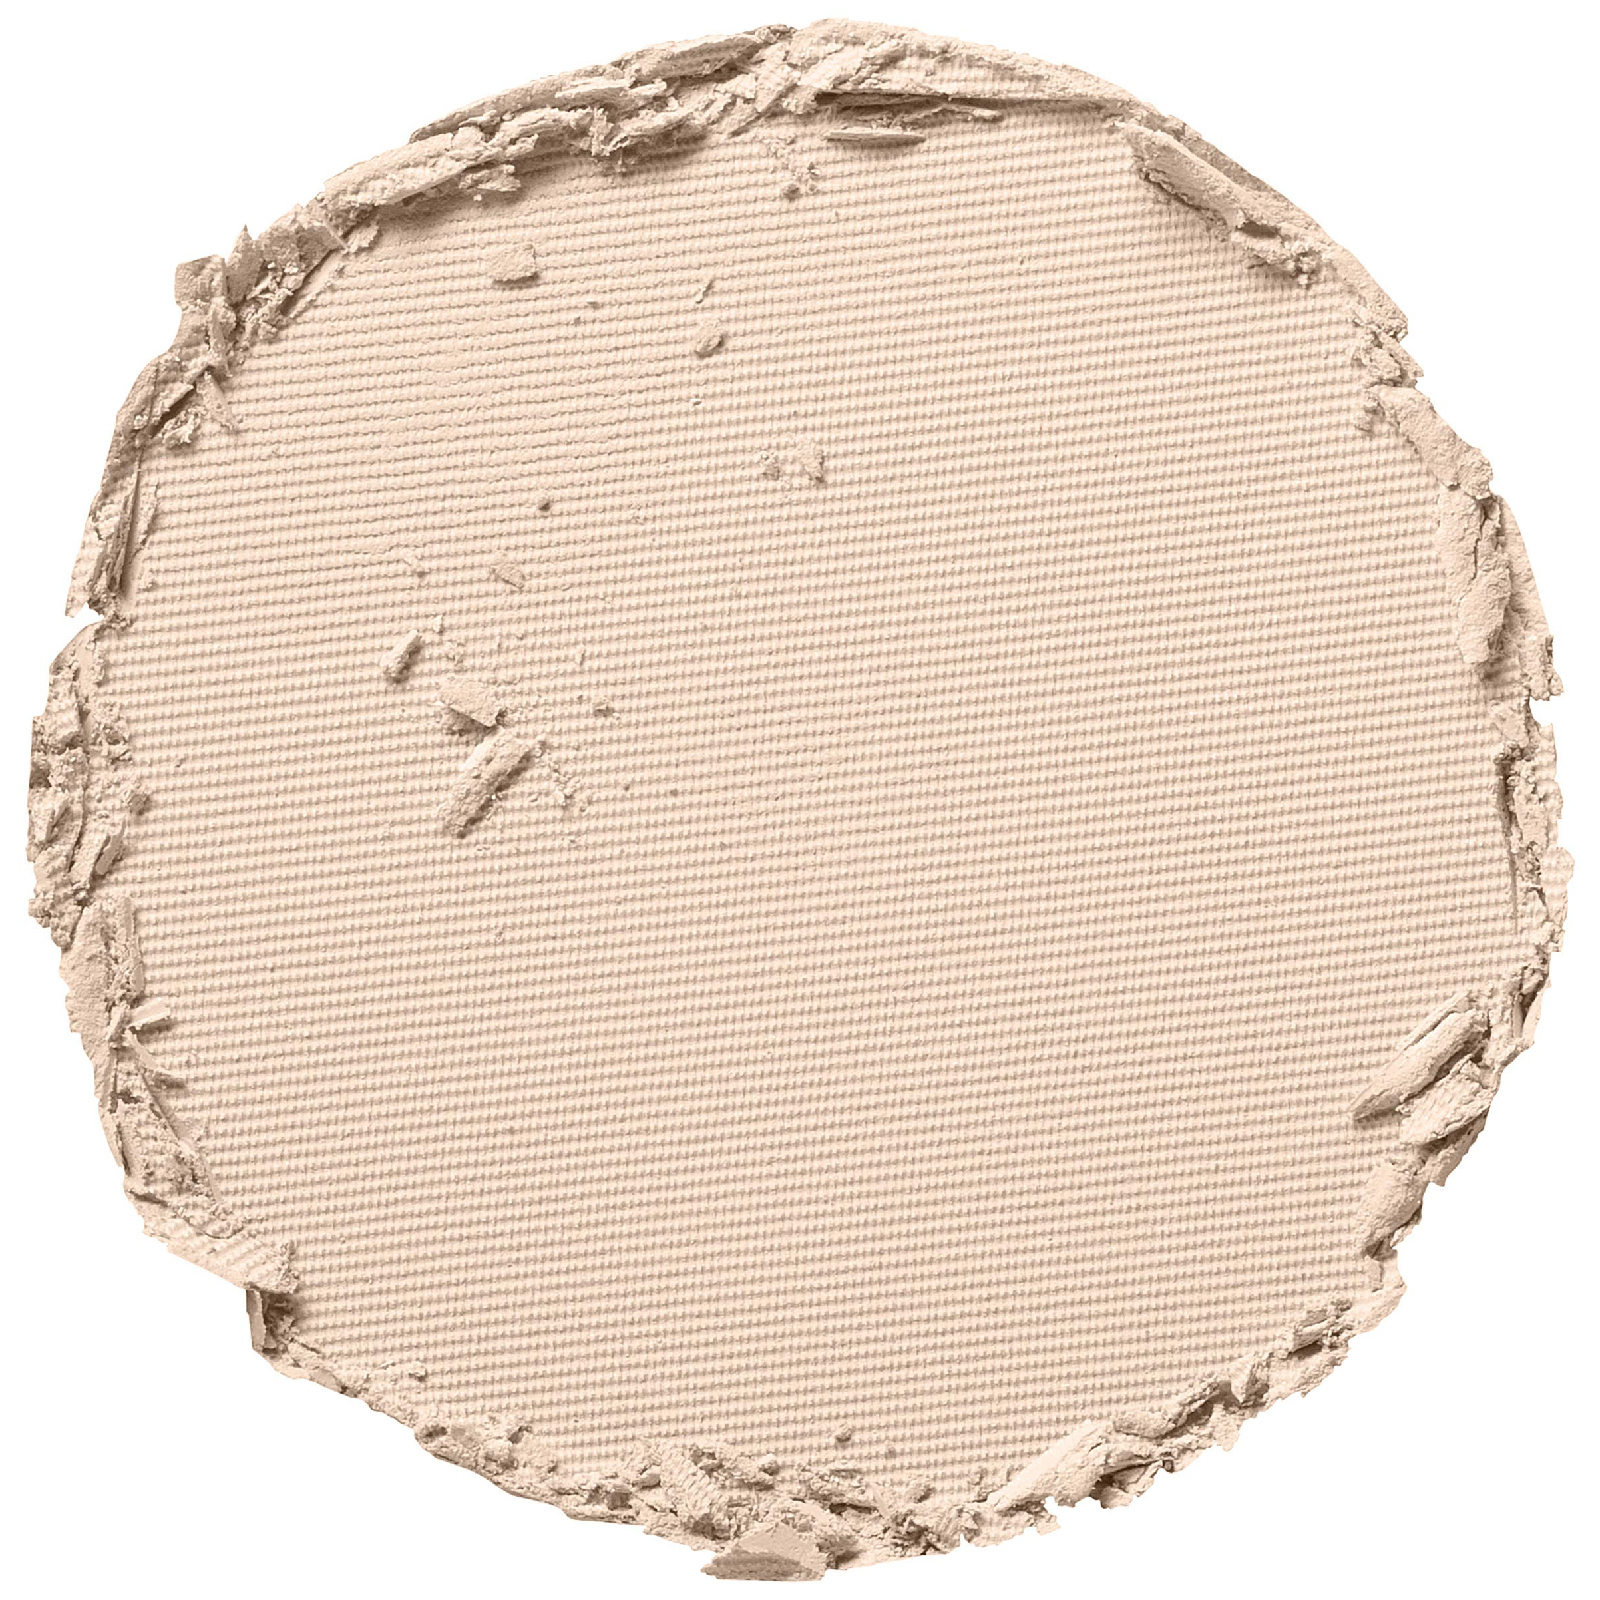 PÜR 4-in-1 Pressed Mineral Make-up 8g (Various Shades) - Porcelain